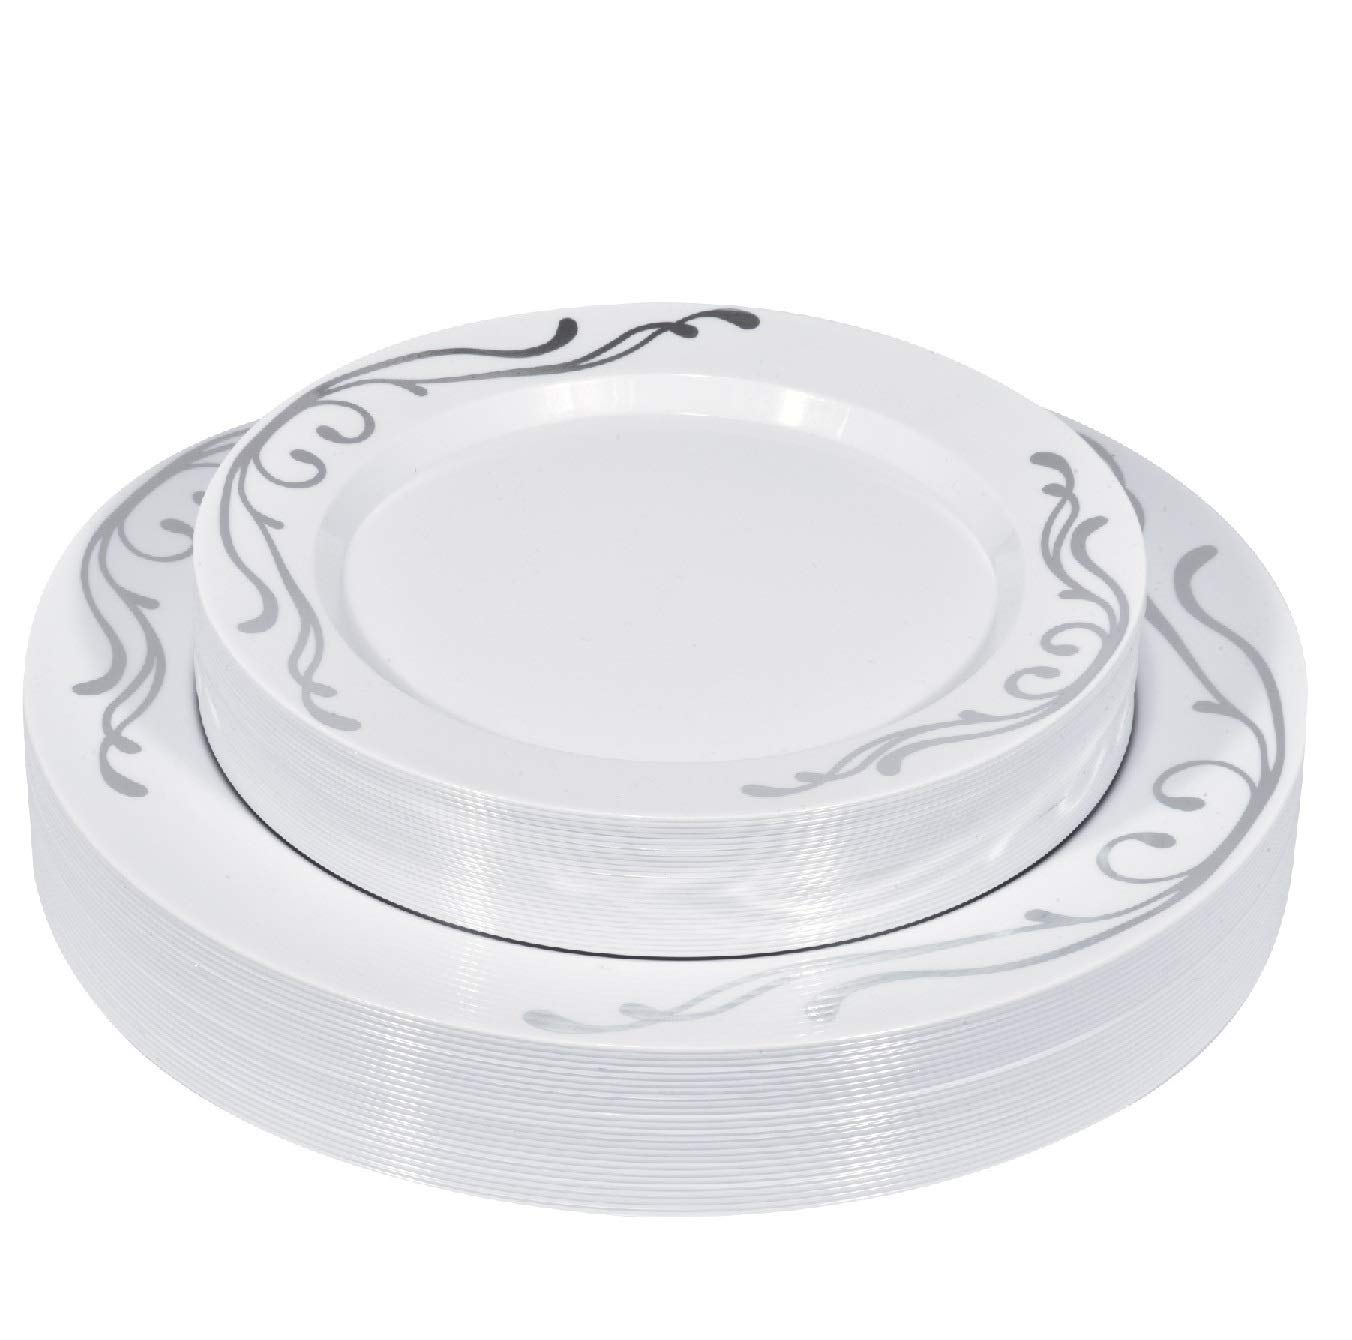 50-Piece Elegant Plastic Plates Set Service for 25 Disposable Plates Combo Include: 25 Dinner Plates & 25 Salad Plates for Weddings, Parties, Catering & Everyday Use (Silver Scroll) -Stock Your Home